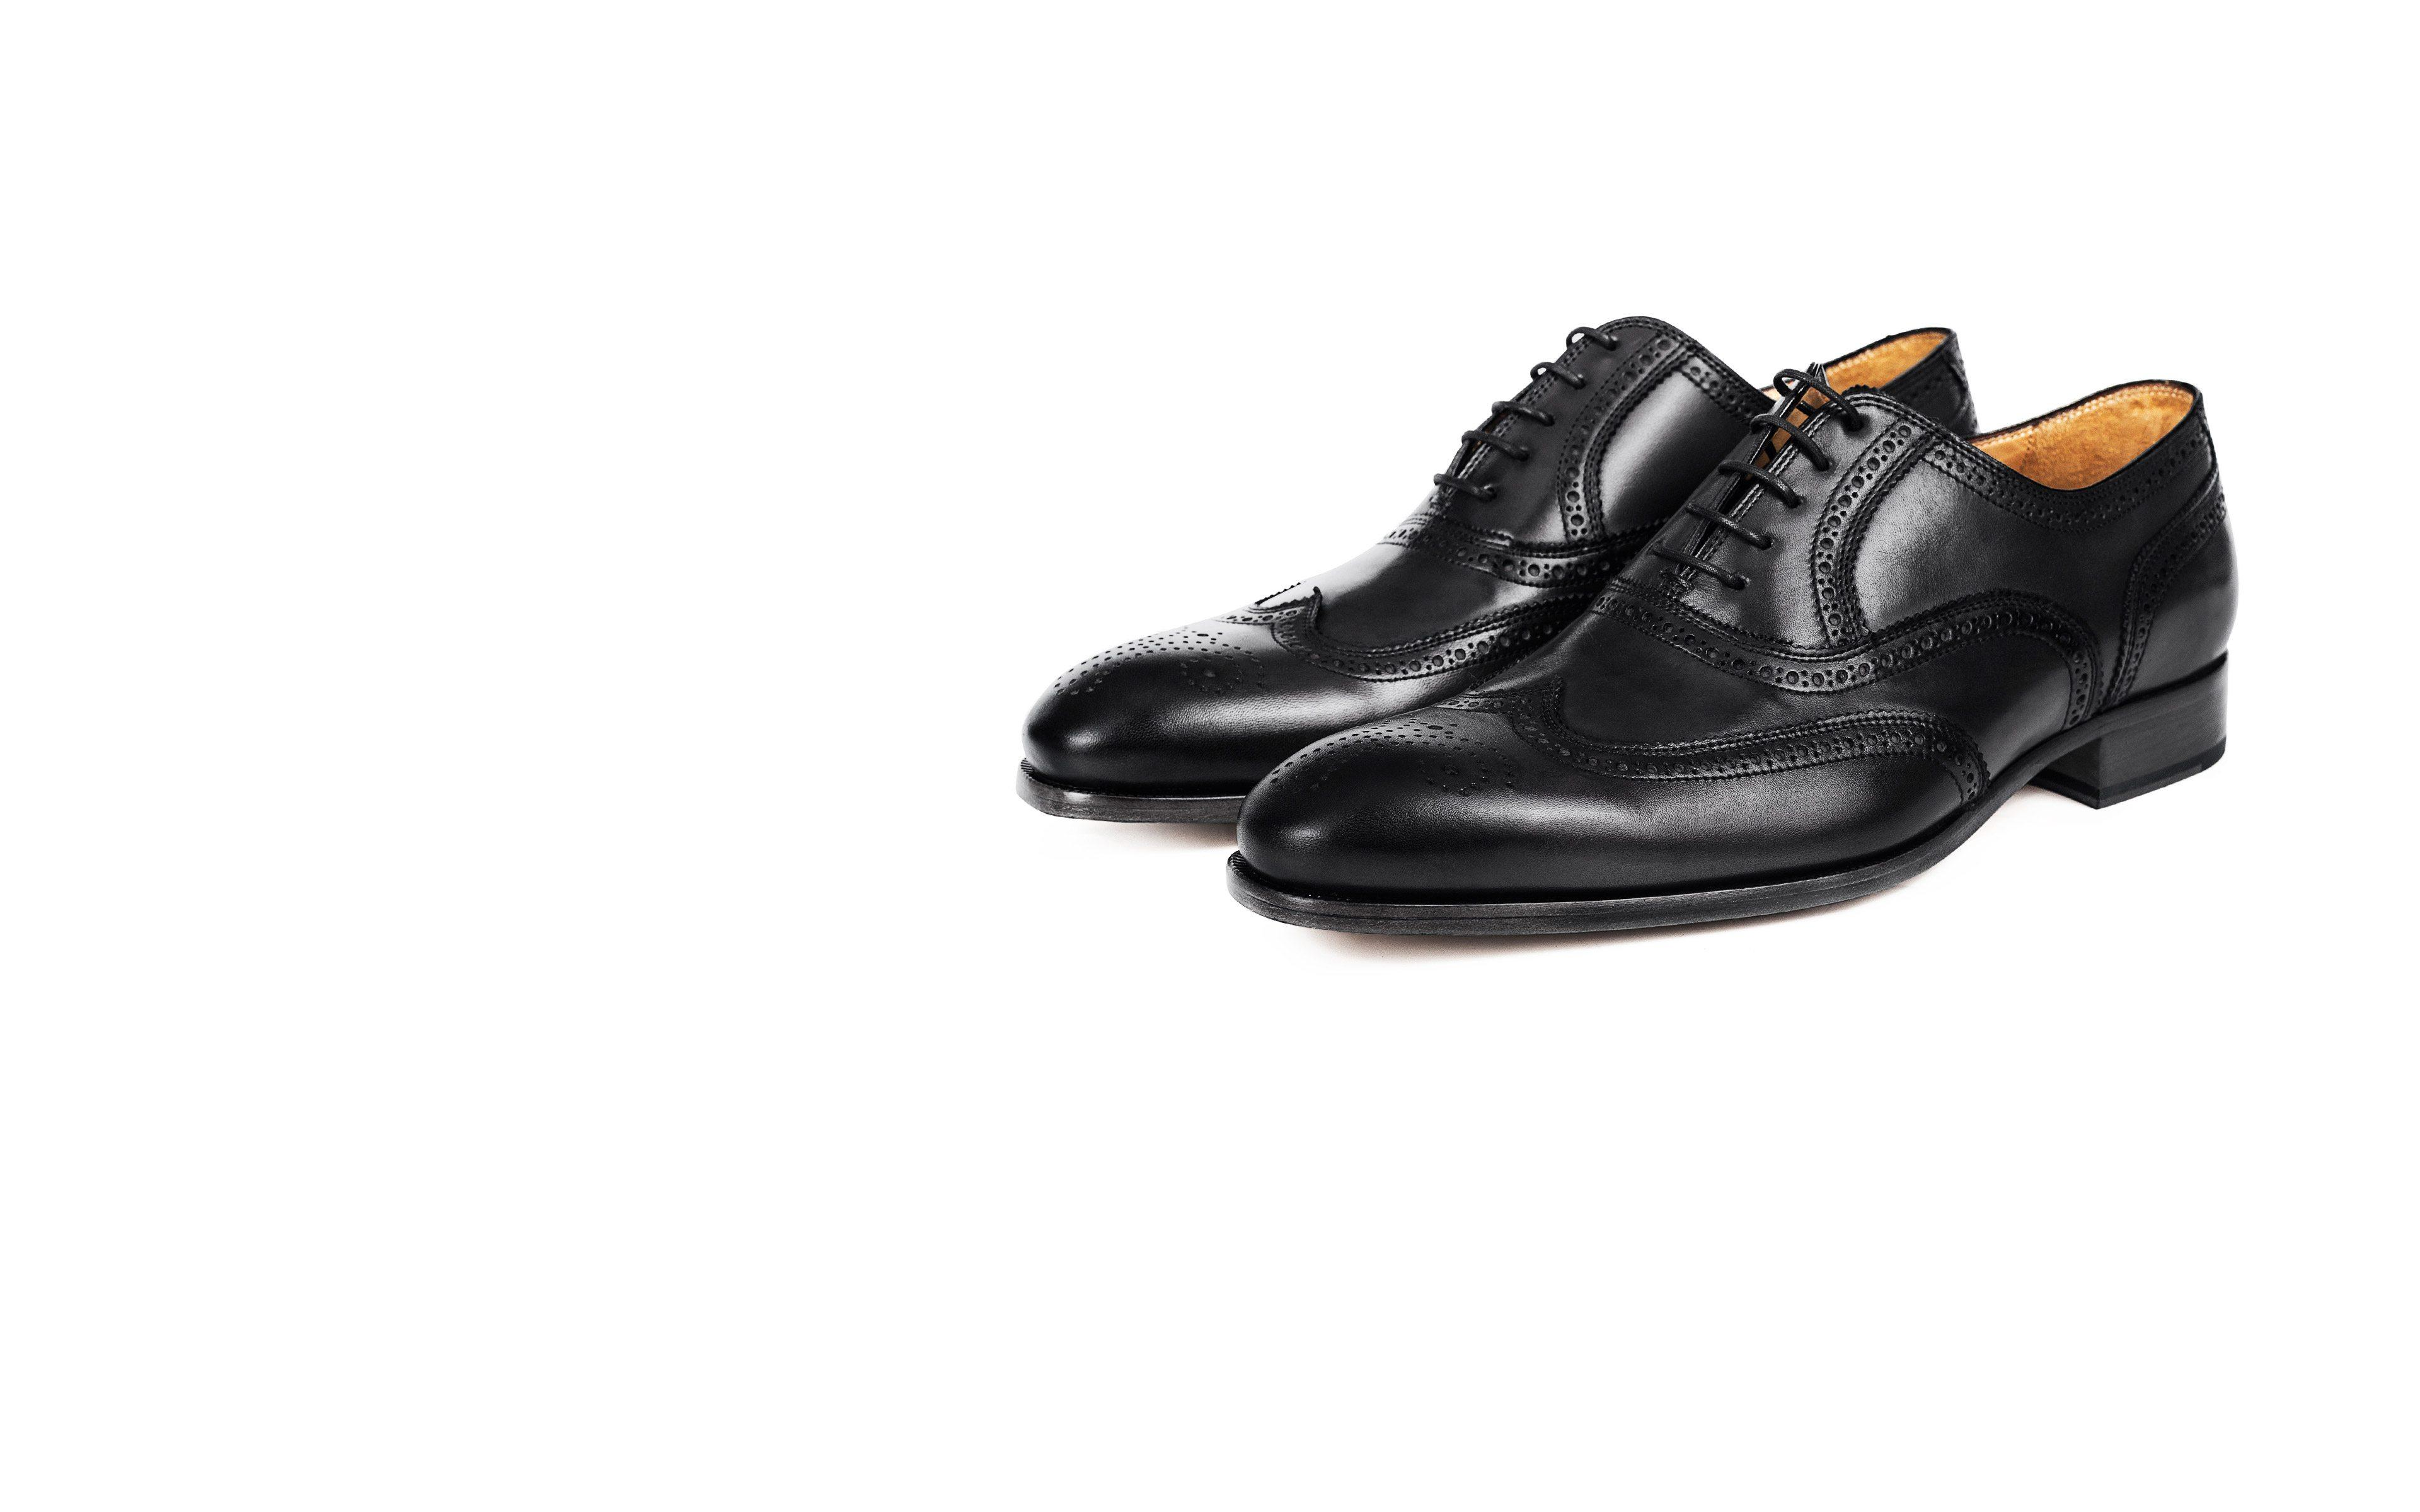 Black Wingtip Oxford